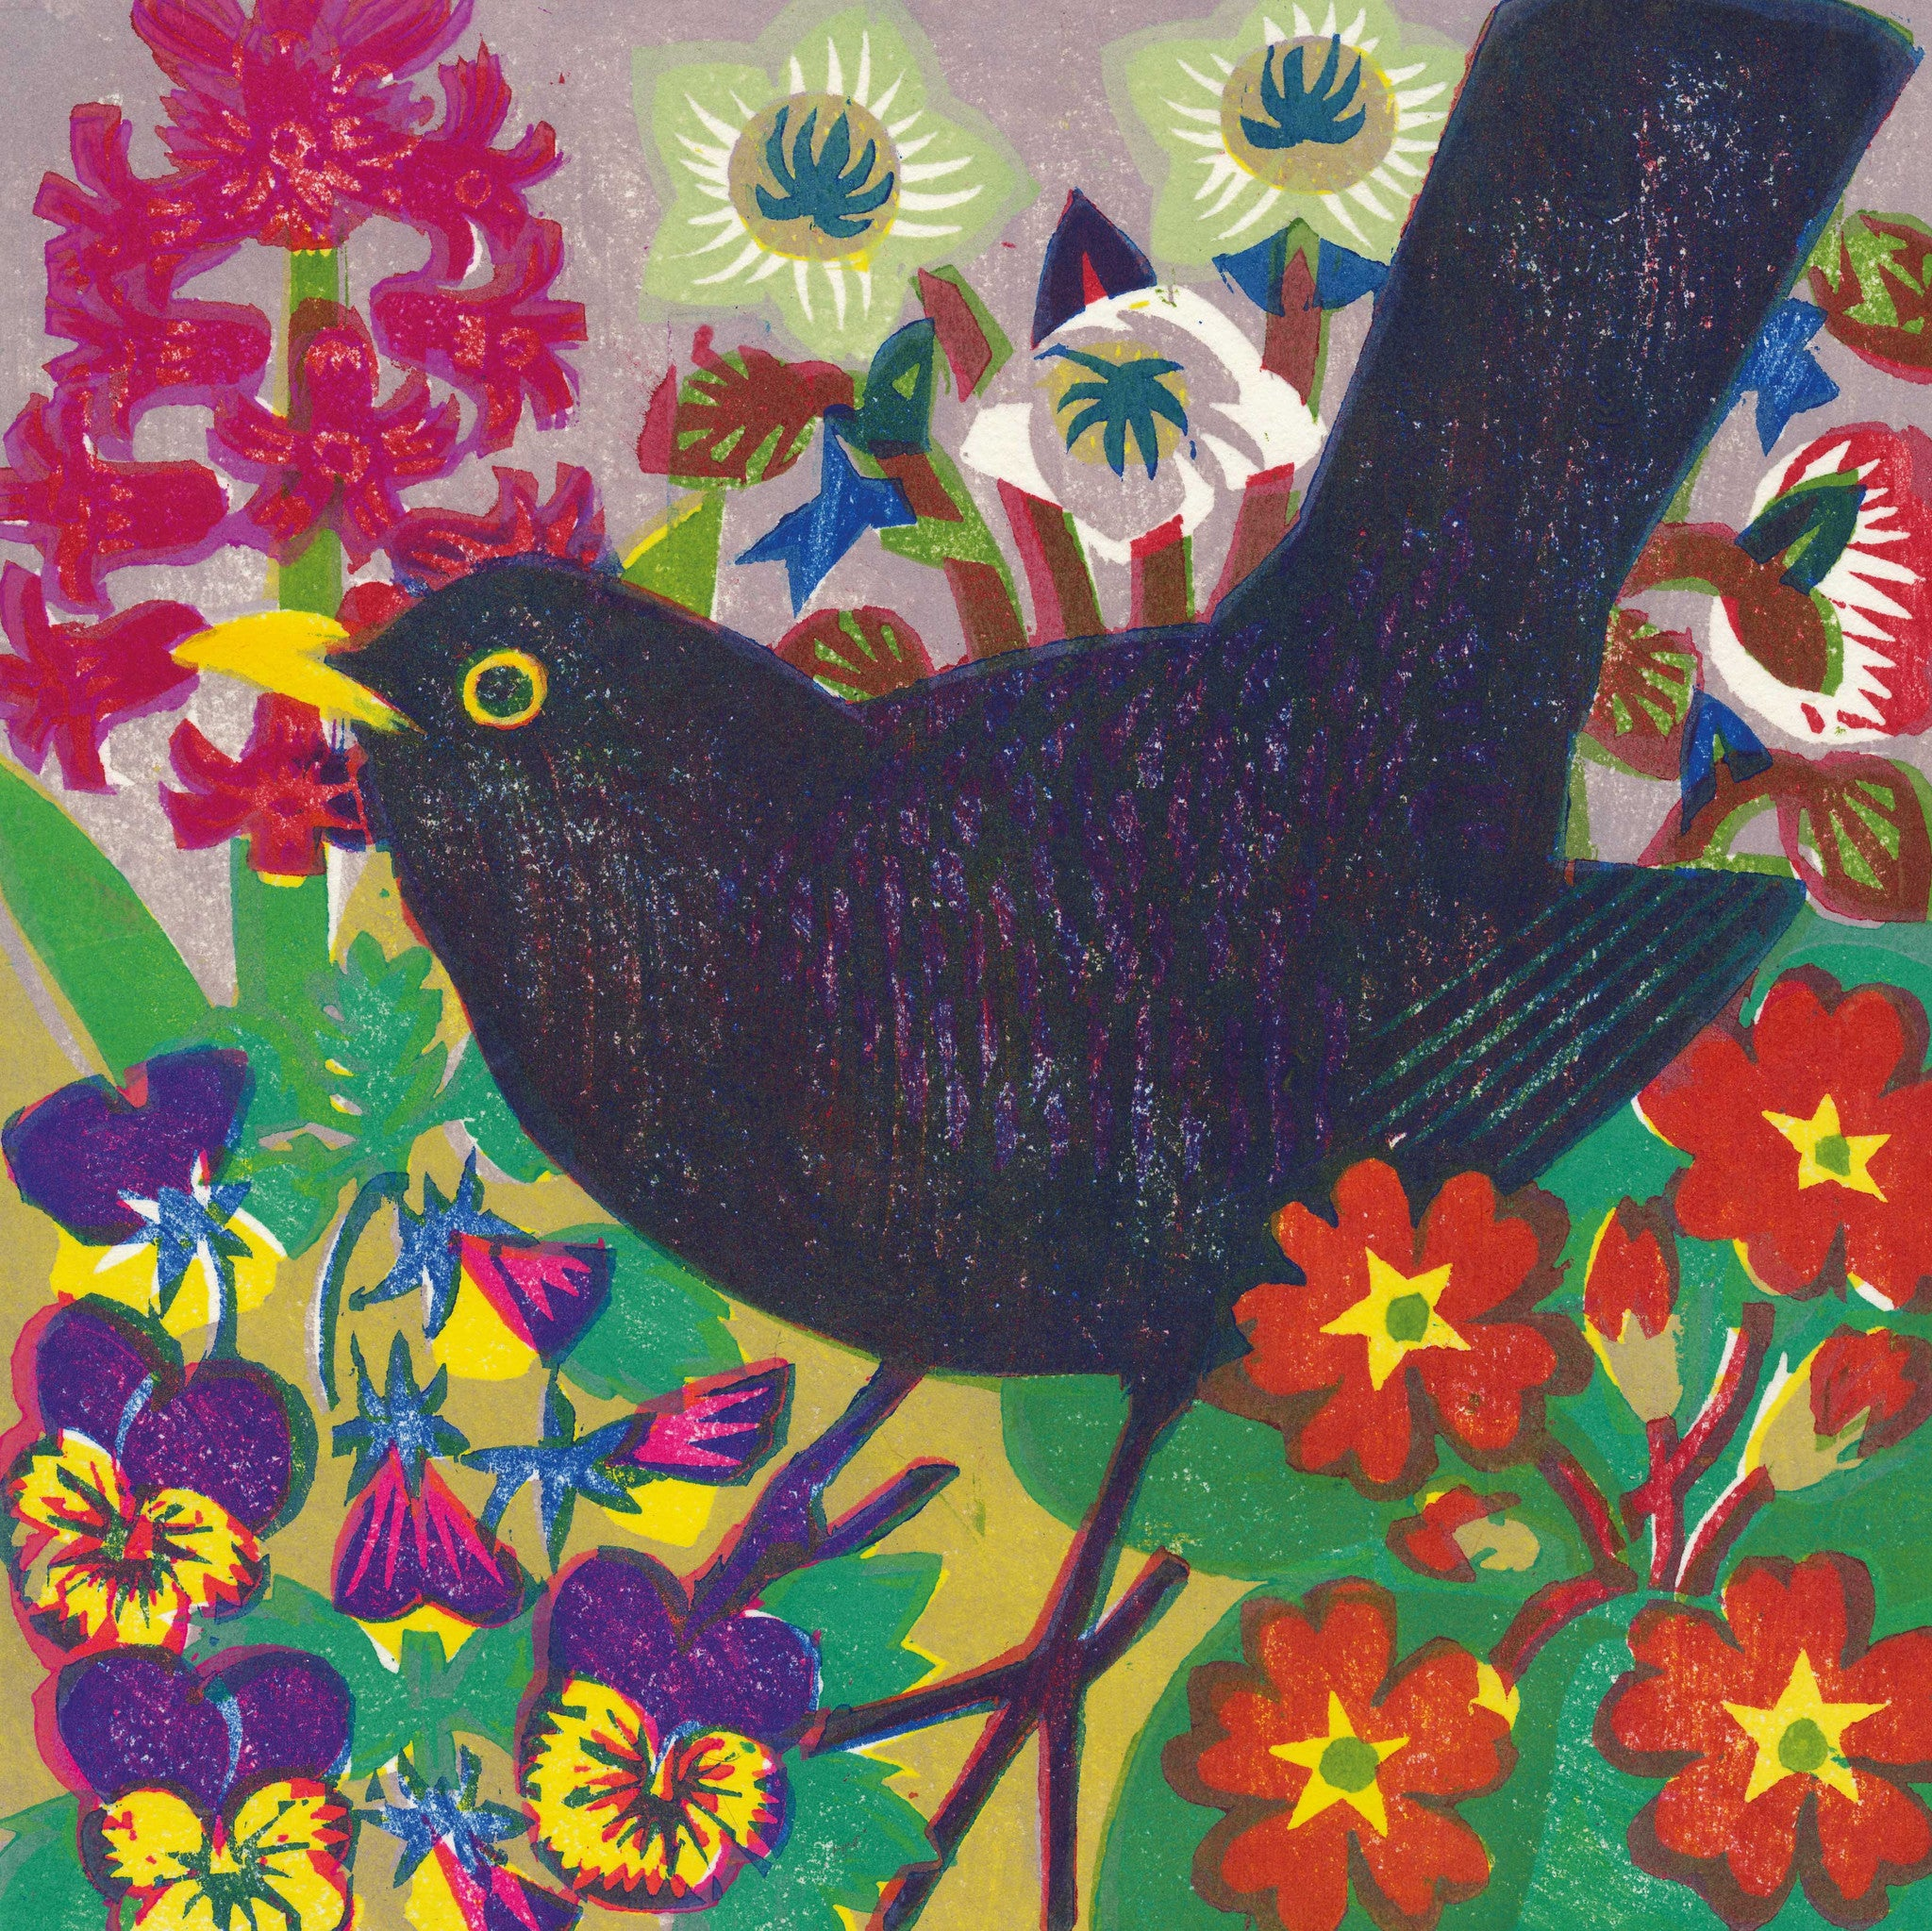 Spring Blackbird by Matt Underwood, Prize winner, Art Greeting Card, Blackbird and spring flowers